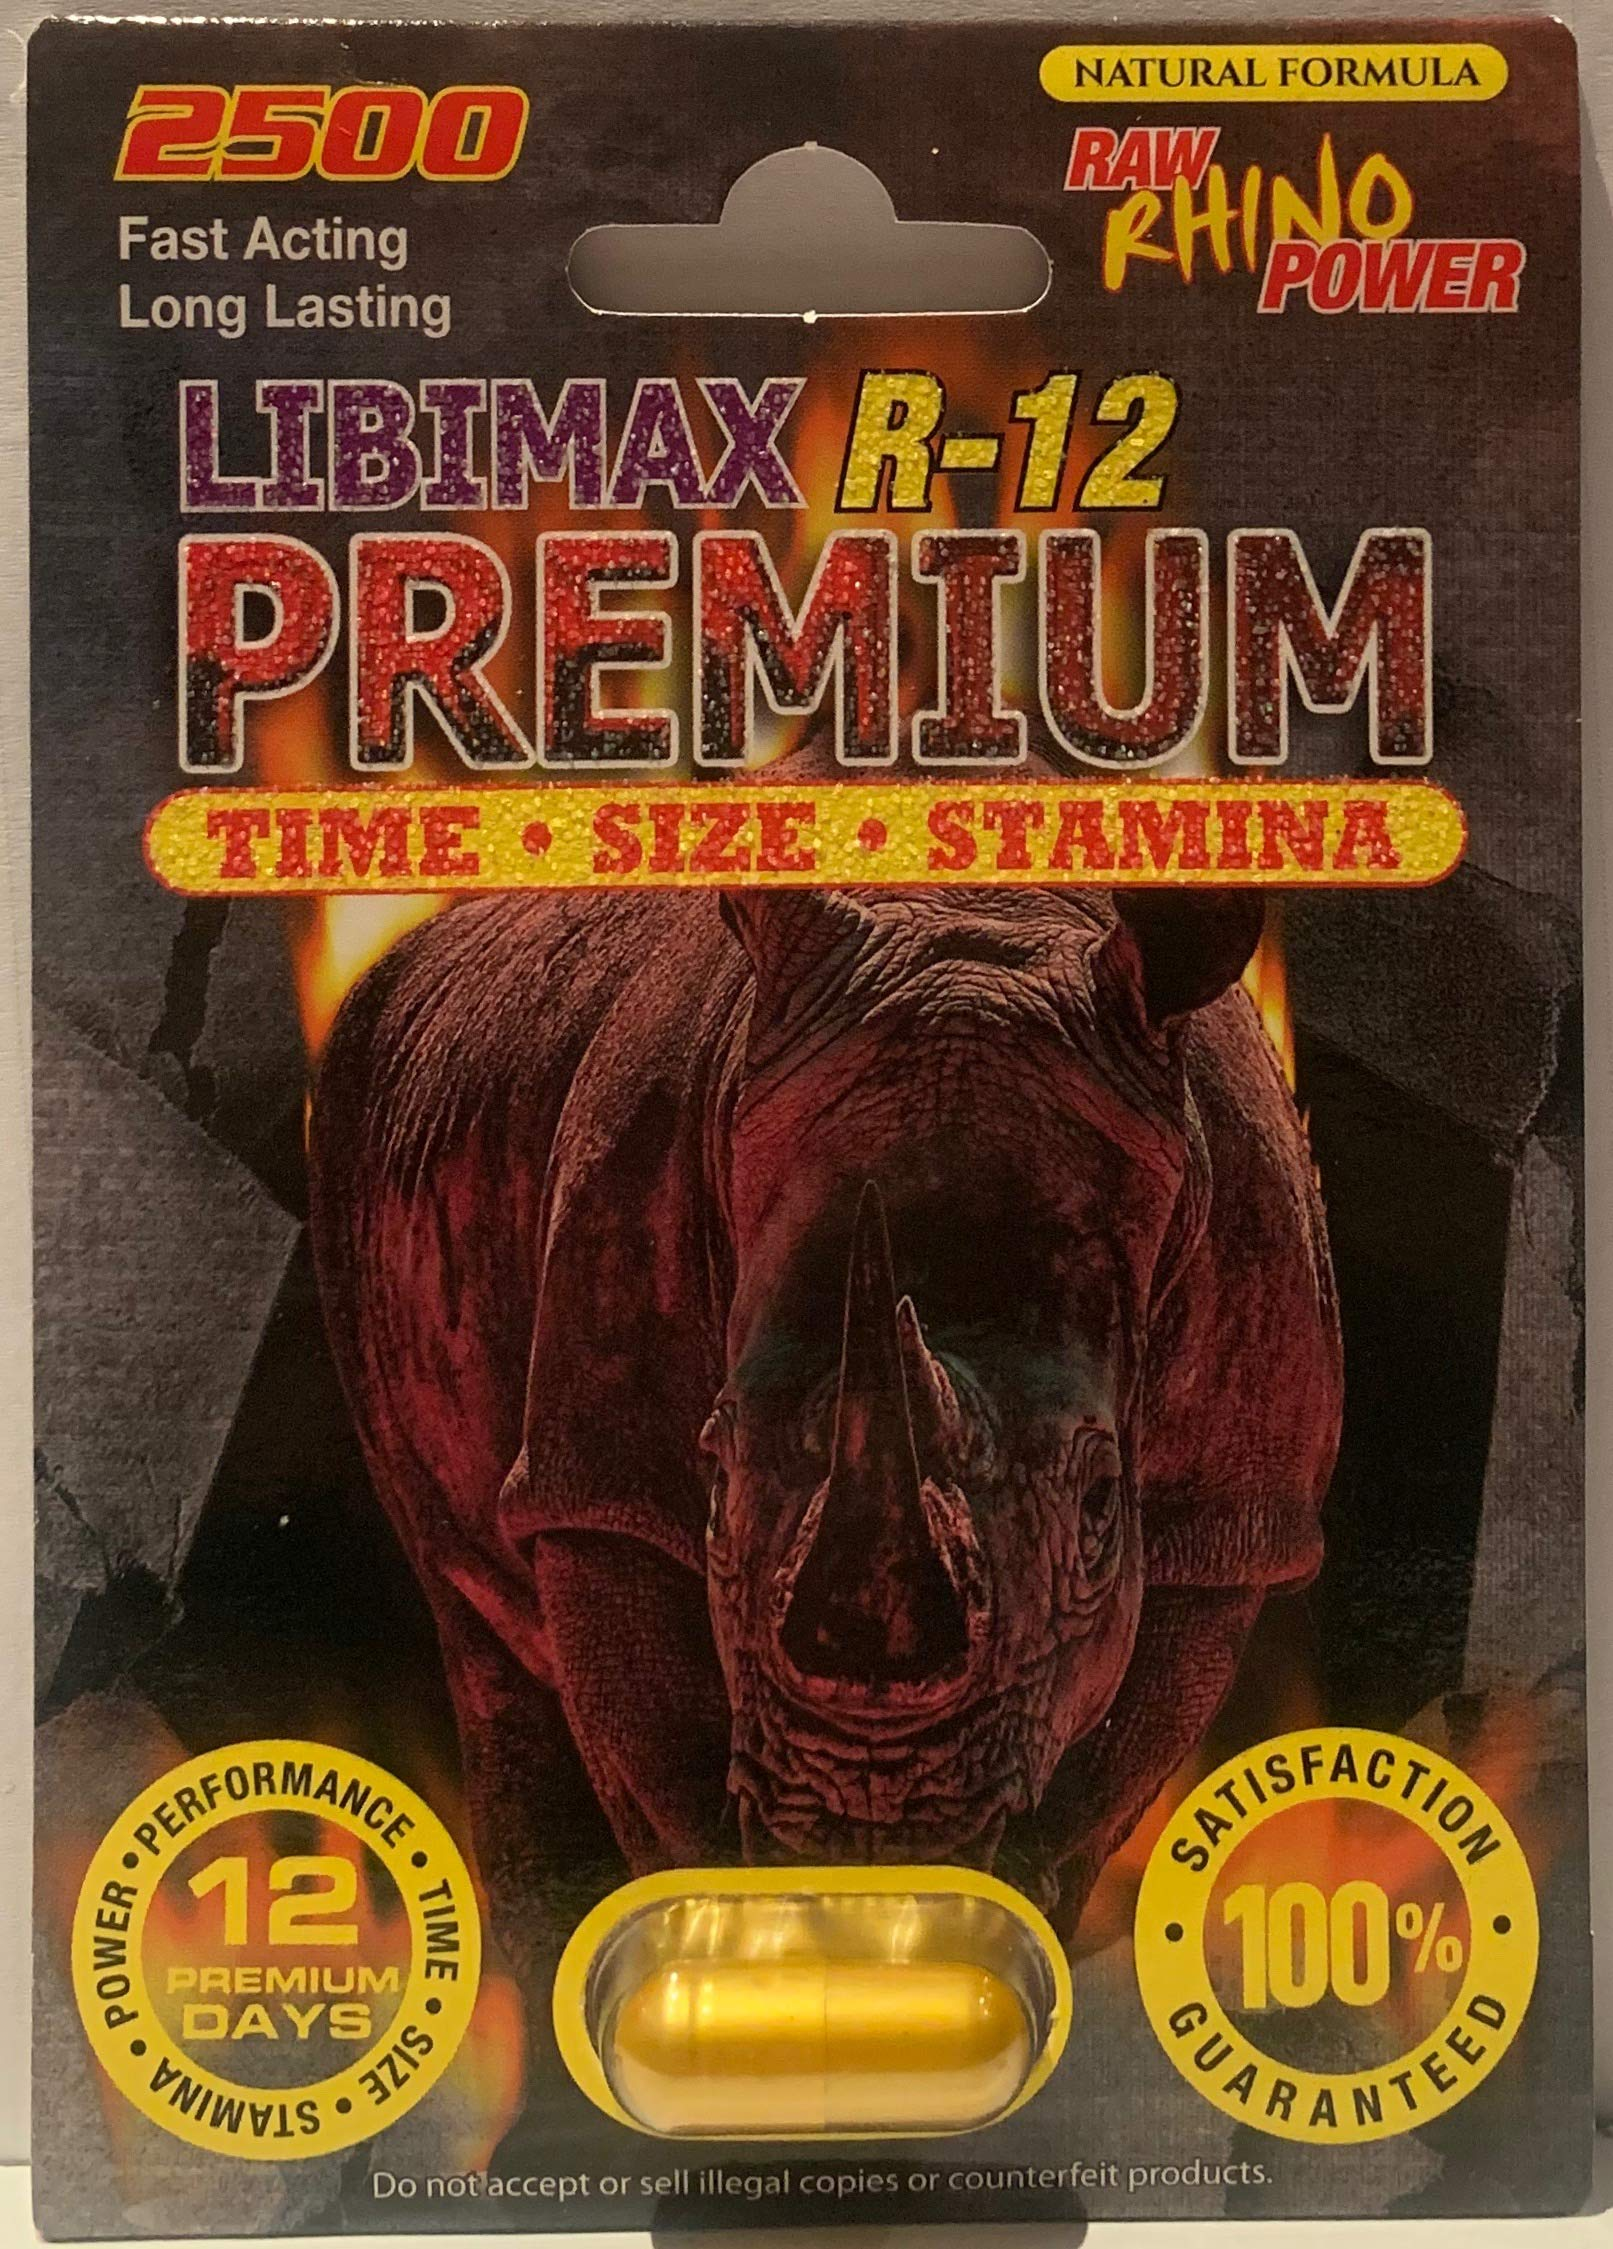 Libimax R-12 Premium Power 2500mg Limited Edition (24)